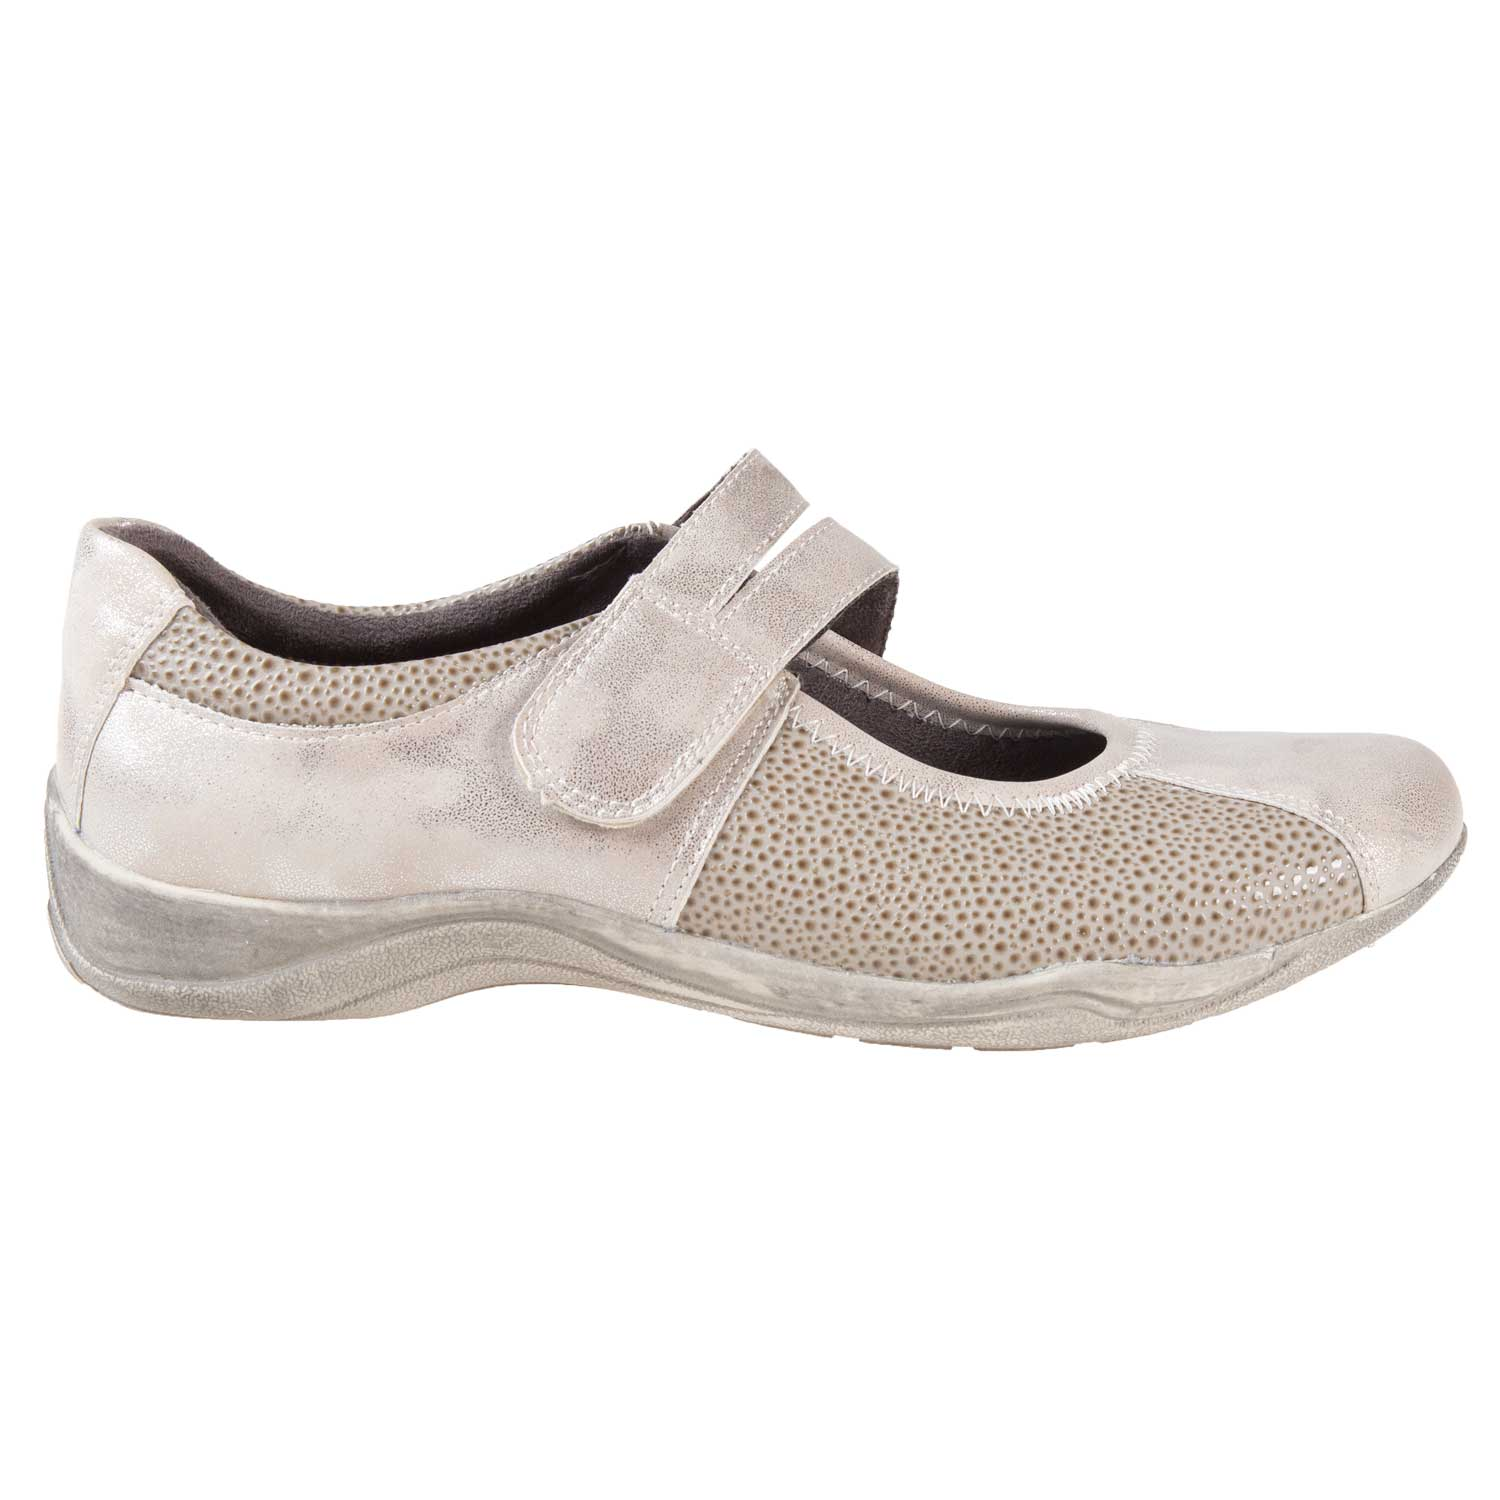 Women's round toe slip-on sports shoes with velcro closure, size 10